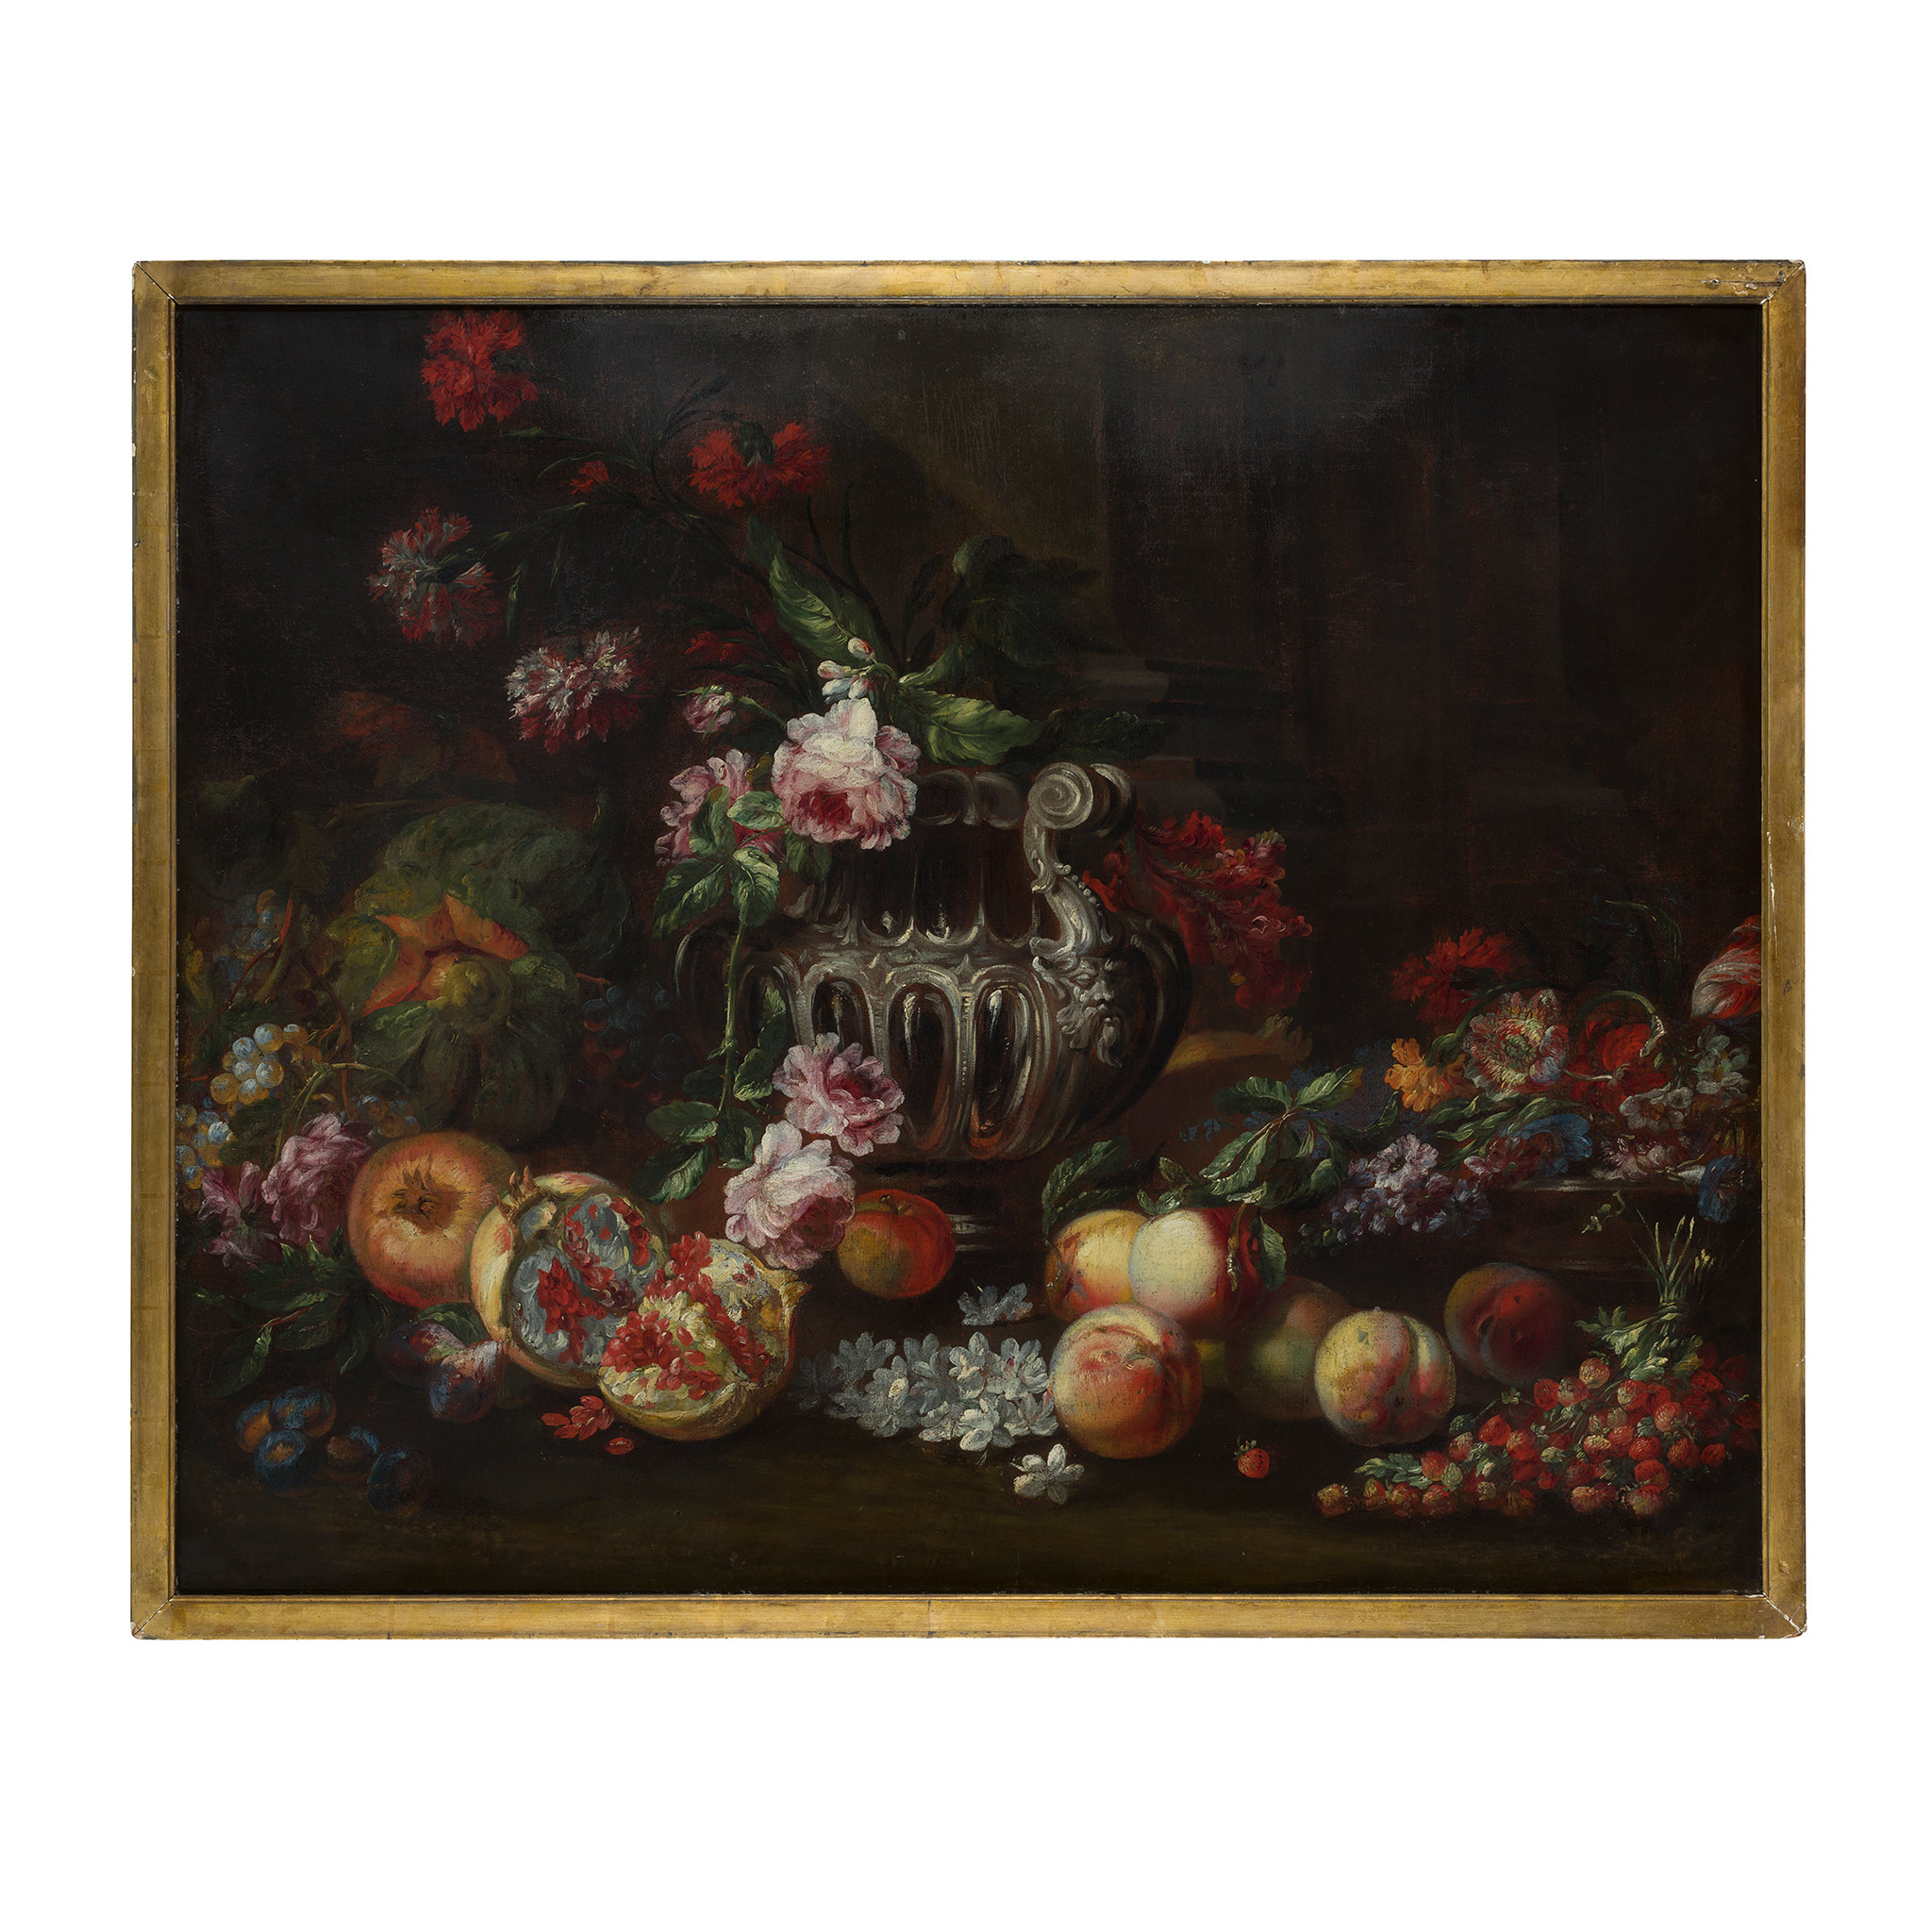 FOLLOWER OF MICHELANGELO DI CAMPIDOGLIO A STILL LIFE OF ASSORTED FRUIT AND FLOWERS WITH SILVER URN - Image 2 of 2